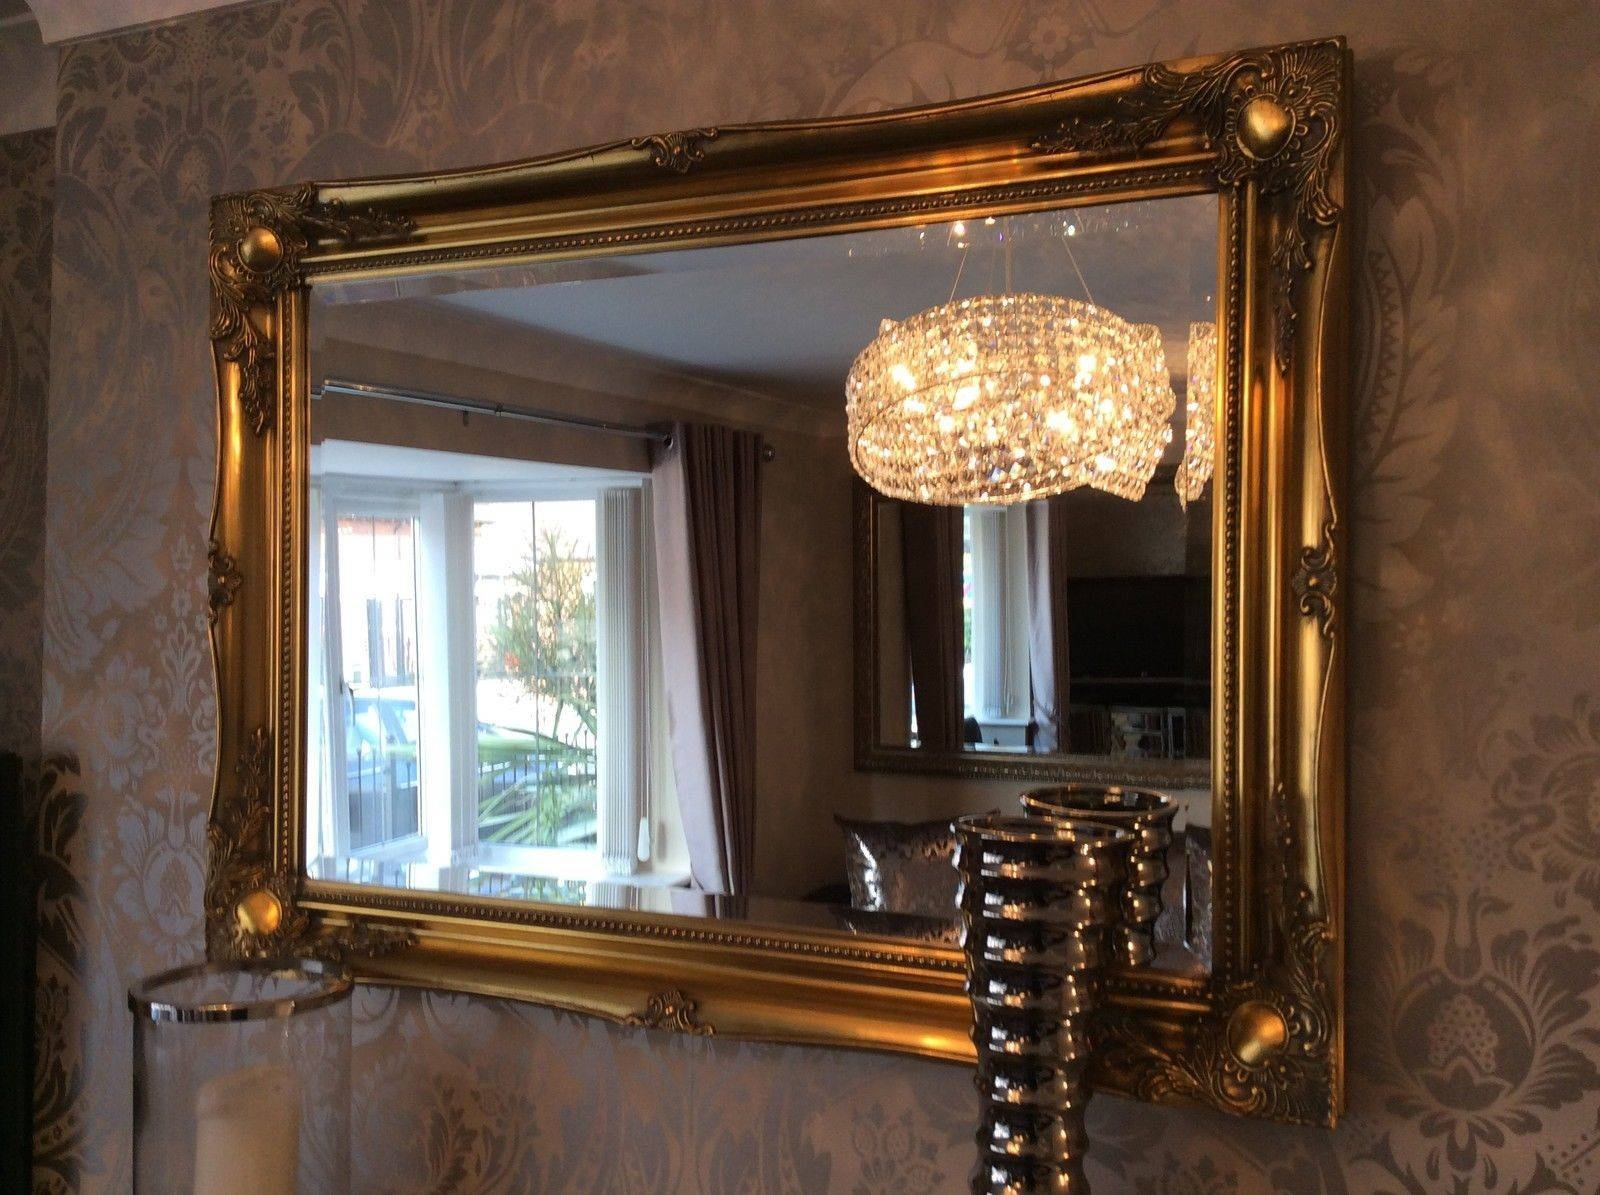 Download Decorative Gold Mirrors | Gen4Congress regarding White Shabby Chic Mirrors Sale (Image 12 of 25)